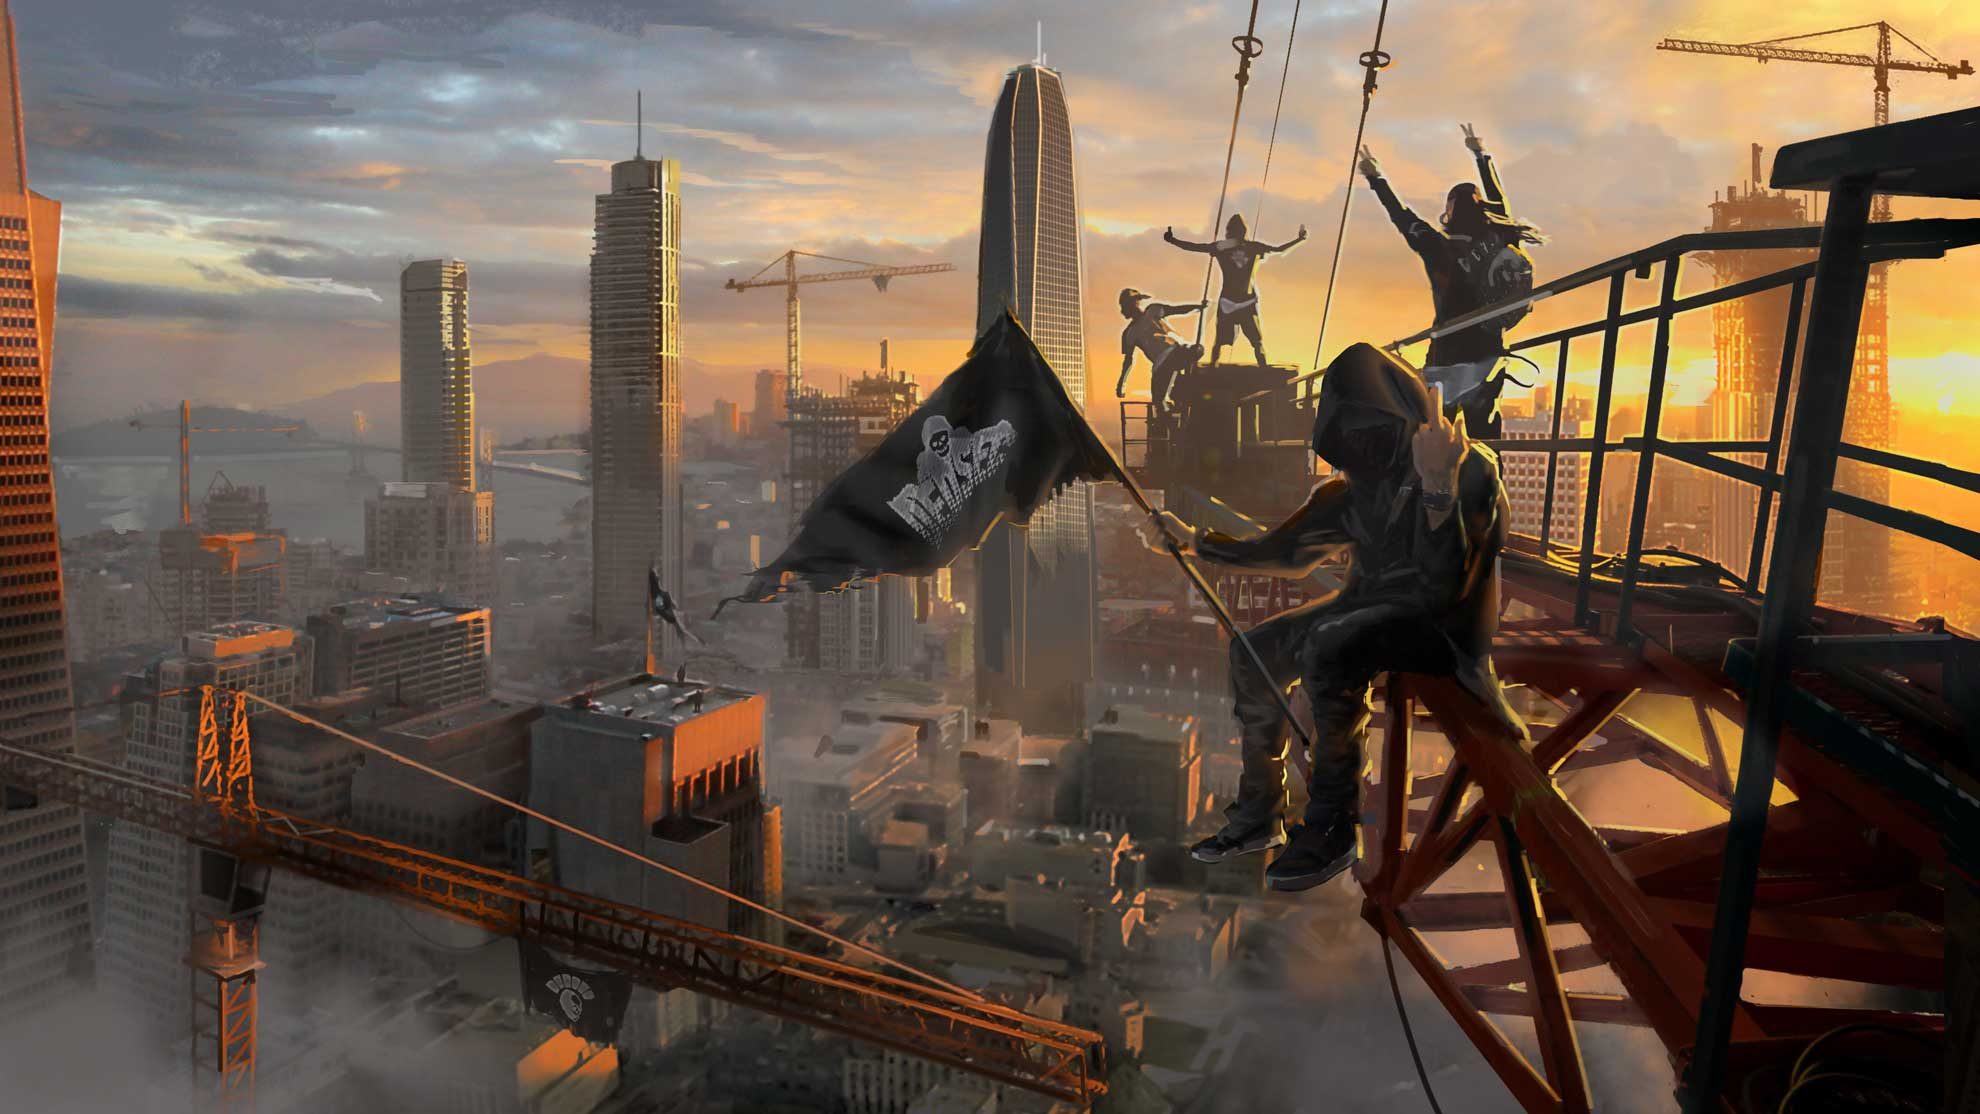 152 Watch Dogs 2 Hd Wallpapers Background Images Wallpaper Abyss